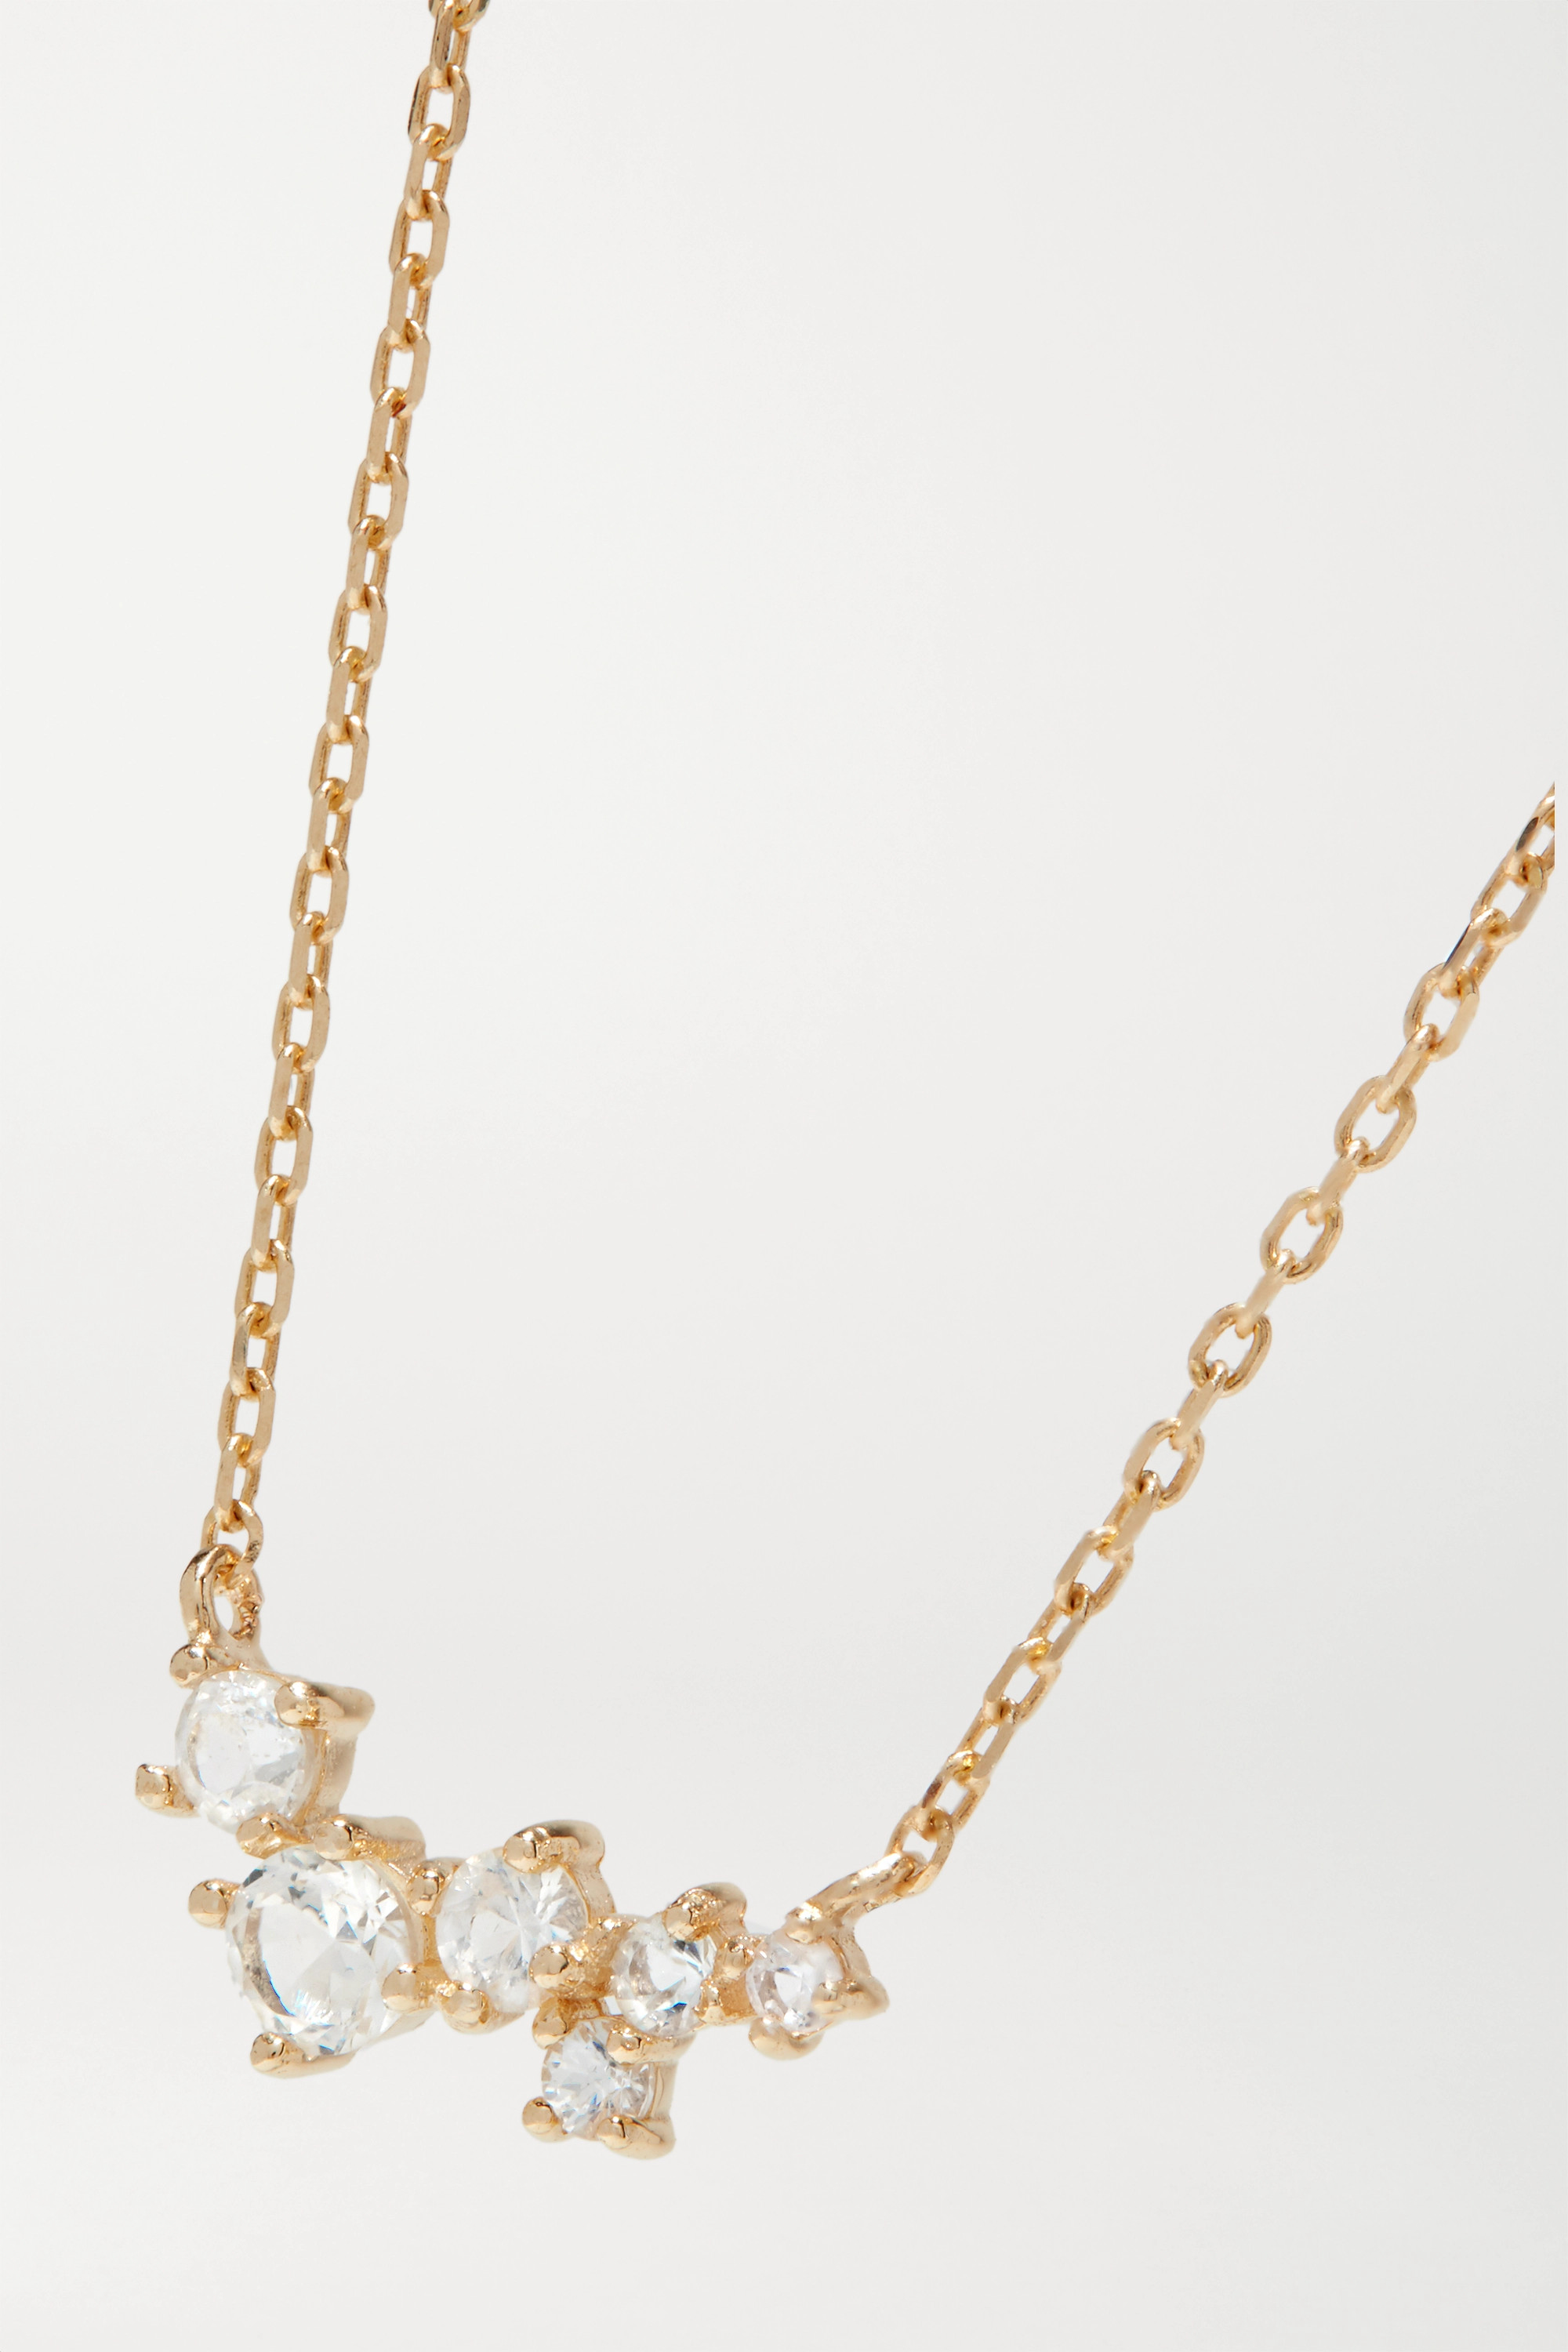 STONE AND STRAND 10-karat gold sapphire necklace